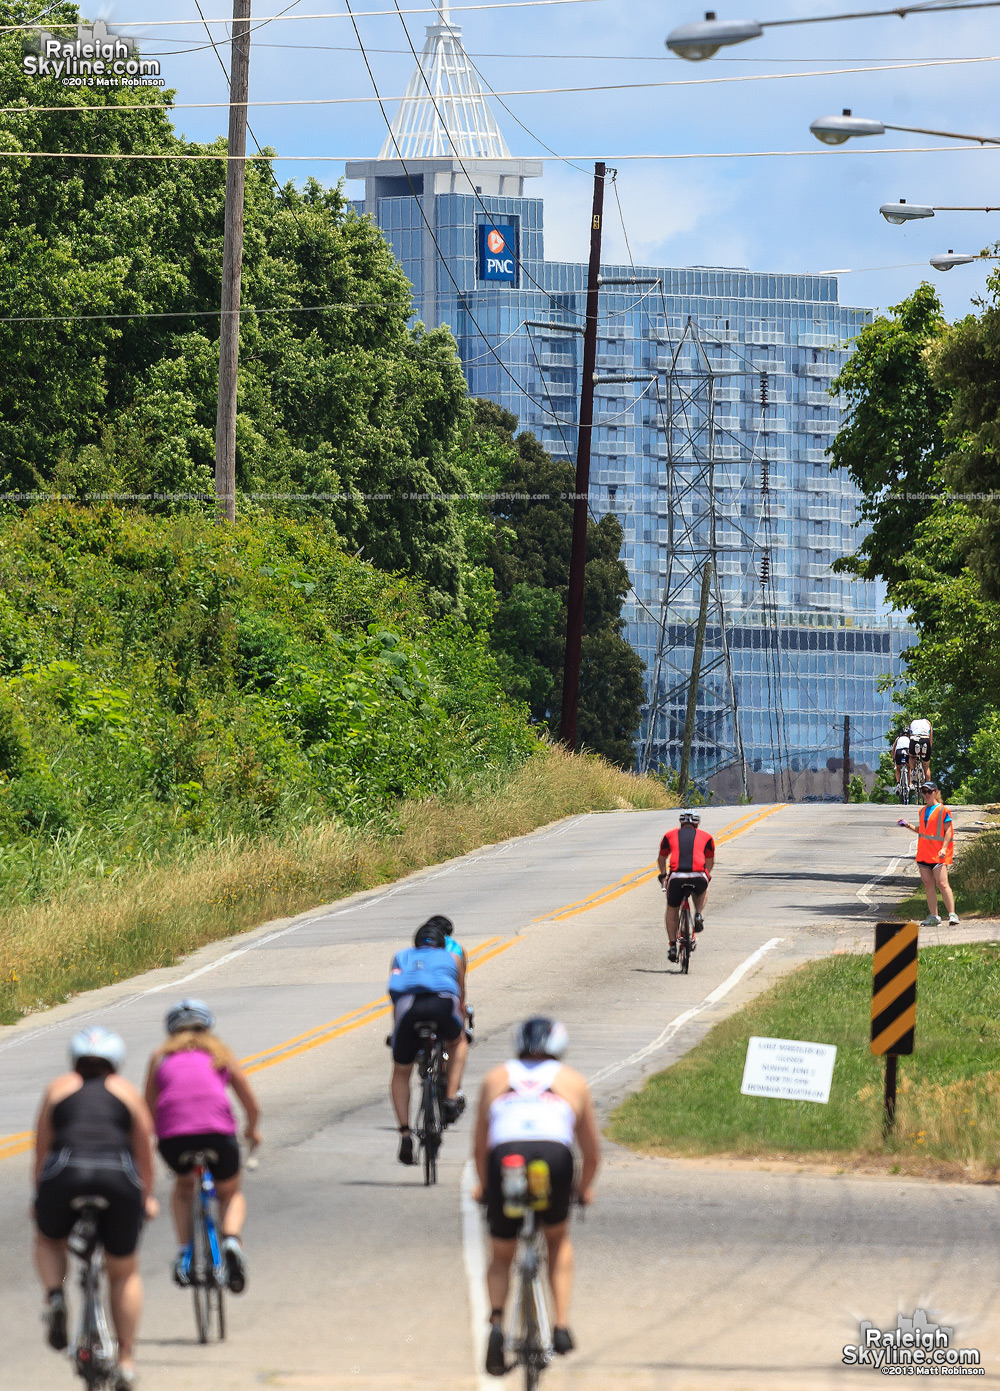 Raleigh Ironman cyclists ride up Lake Wheeler Road toward downtown Raleigh with PNC Plaza